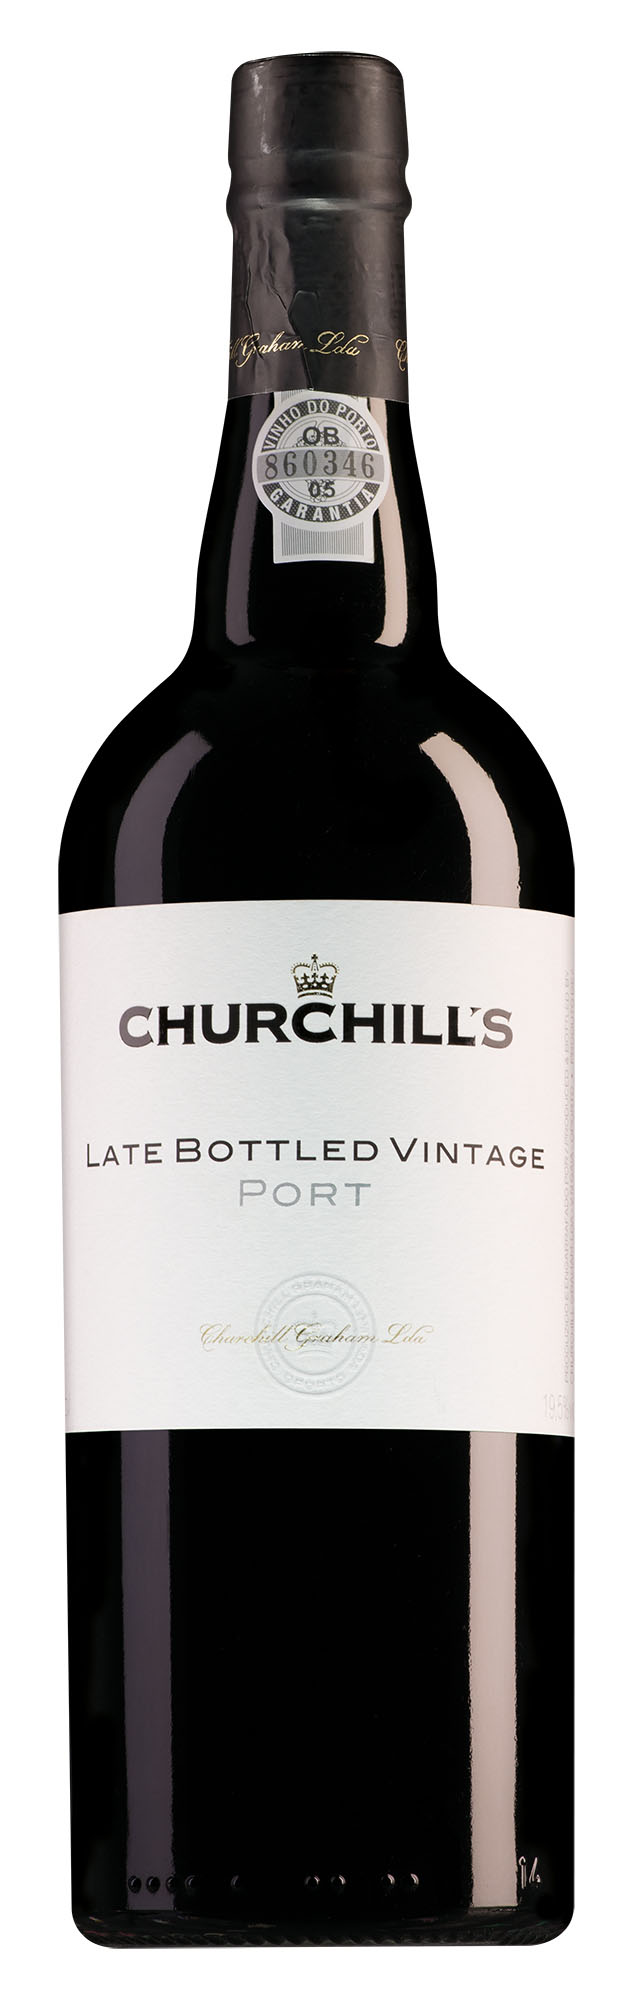 Churchill's Late Bottled Vintage Port